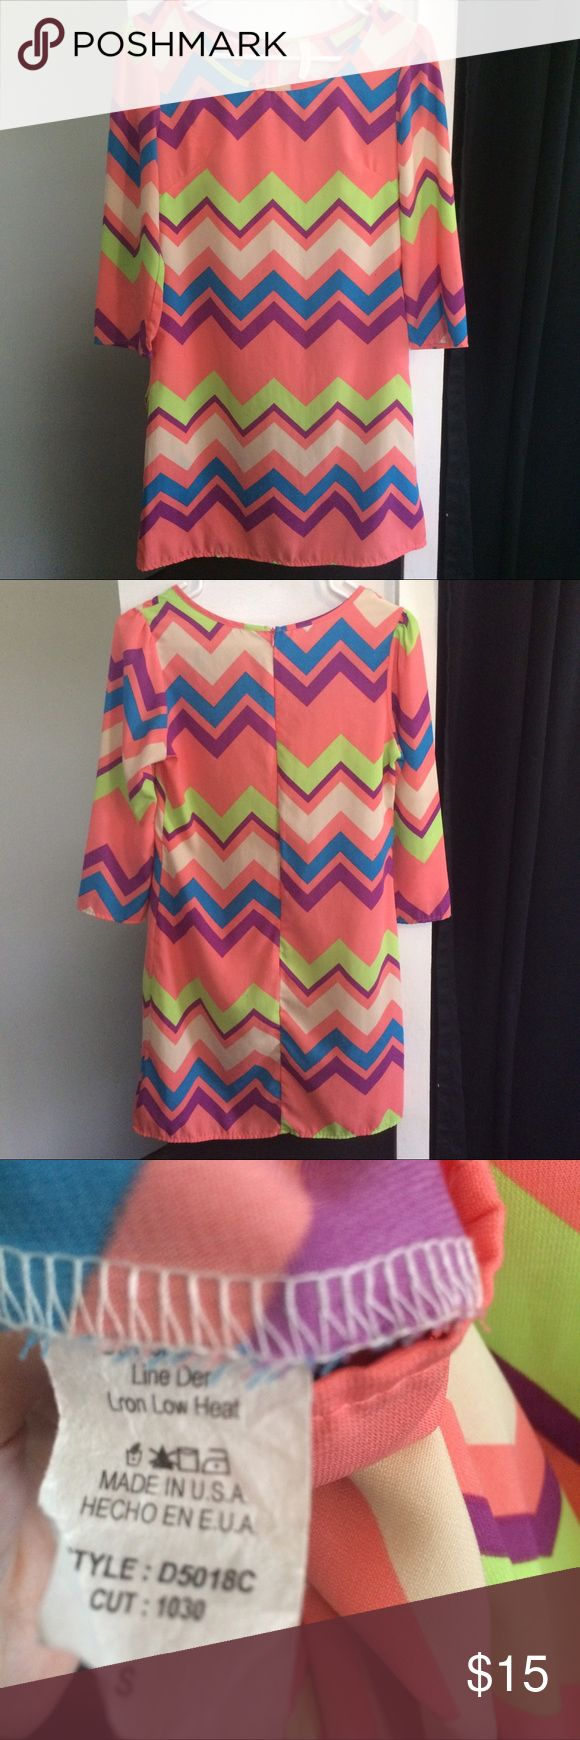 Chevron Shift Dress Coral chevron print dress with cream, purple, green, and blue. It zips in the back. Dresses